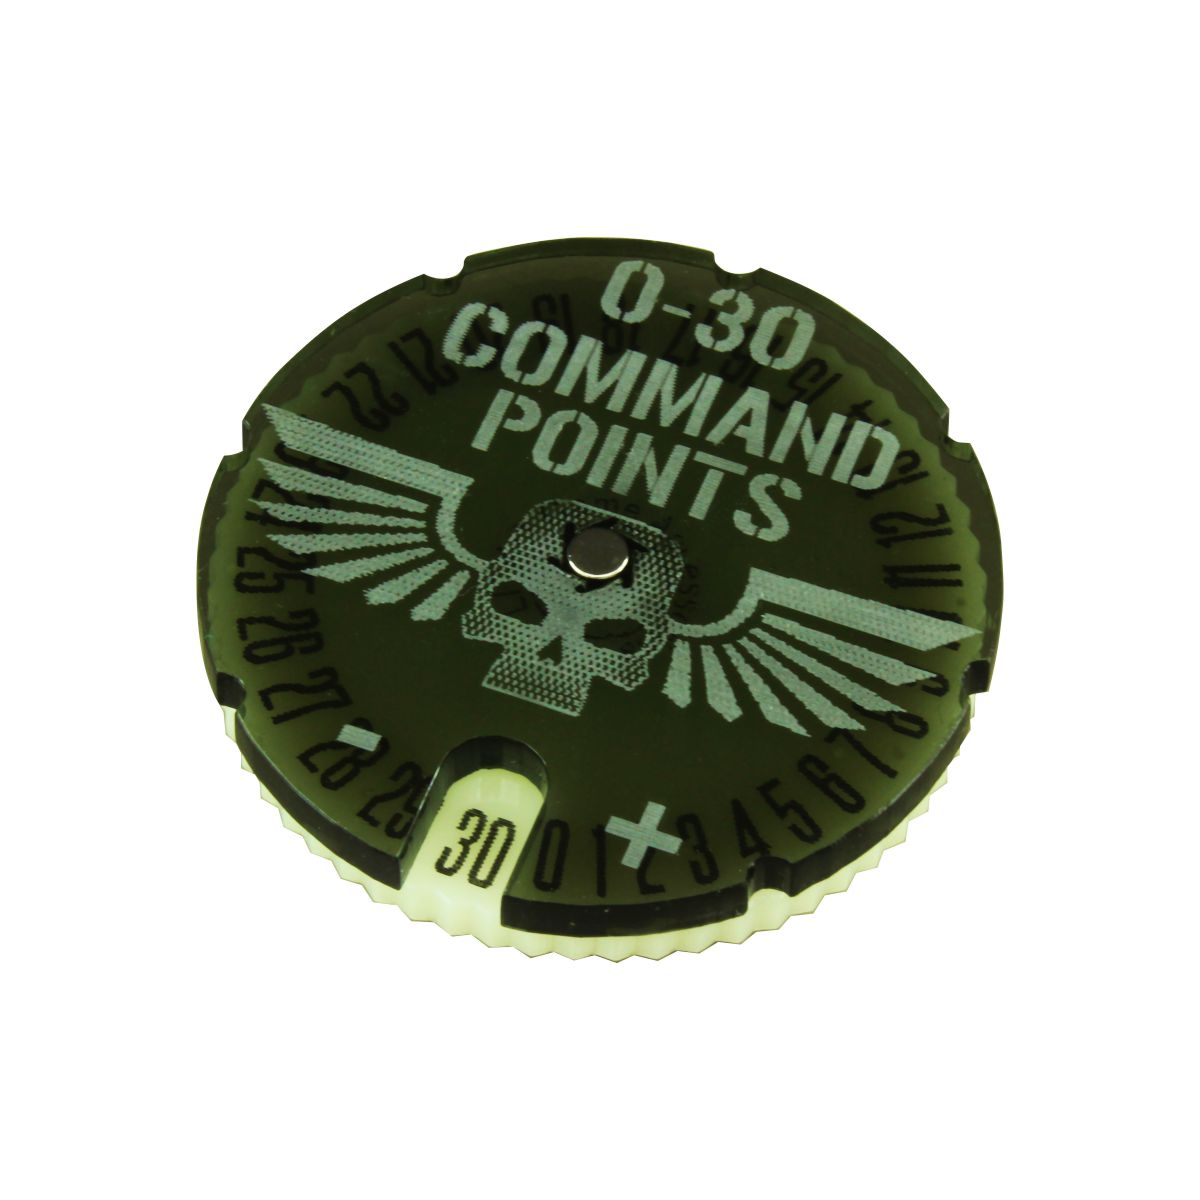 Litko: WHv8 Command Points Dial 0-30 (1)